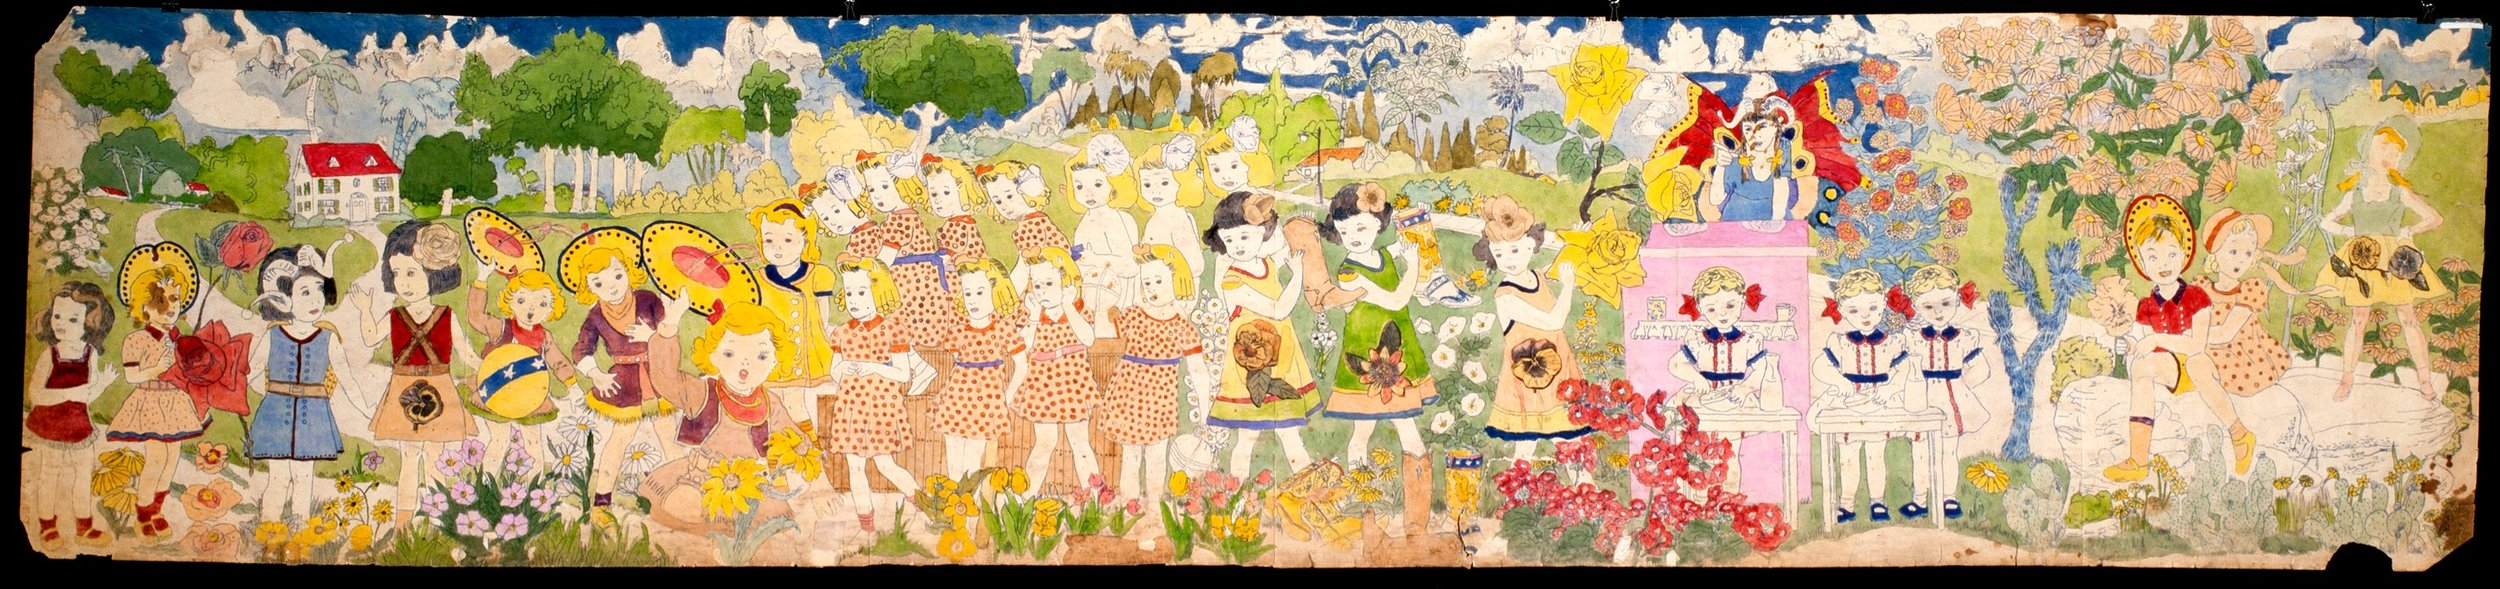 Henry Darger (American, 1892-1973). Untitled, mid-20th century. Watercolor, pencil, carbon tracing, and collage on pierced paper, 24 x 106 ½ in. Collection American Folk Art Museum, New York, museum purchase with funds generously provided by John and Margaret Robson, 2004.1.3B, Photo Credit: James Prinz ©American Folk Art Museum / Art Resource NY © 2017 Kiyoko Lerner / Artists Rights Society (ARS), New York